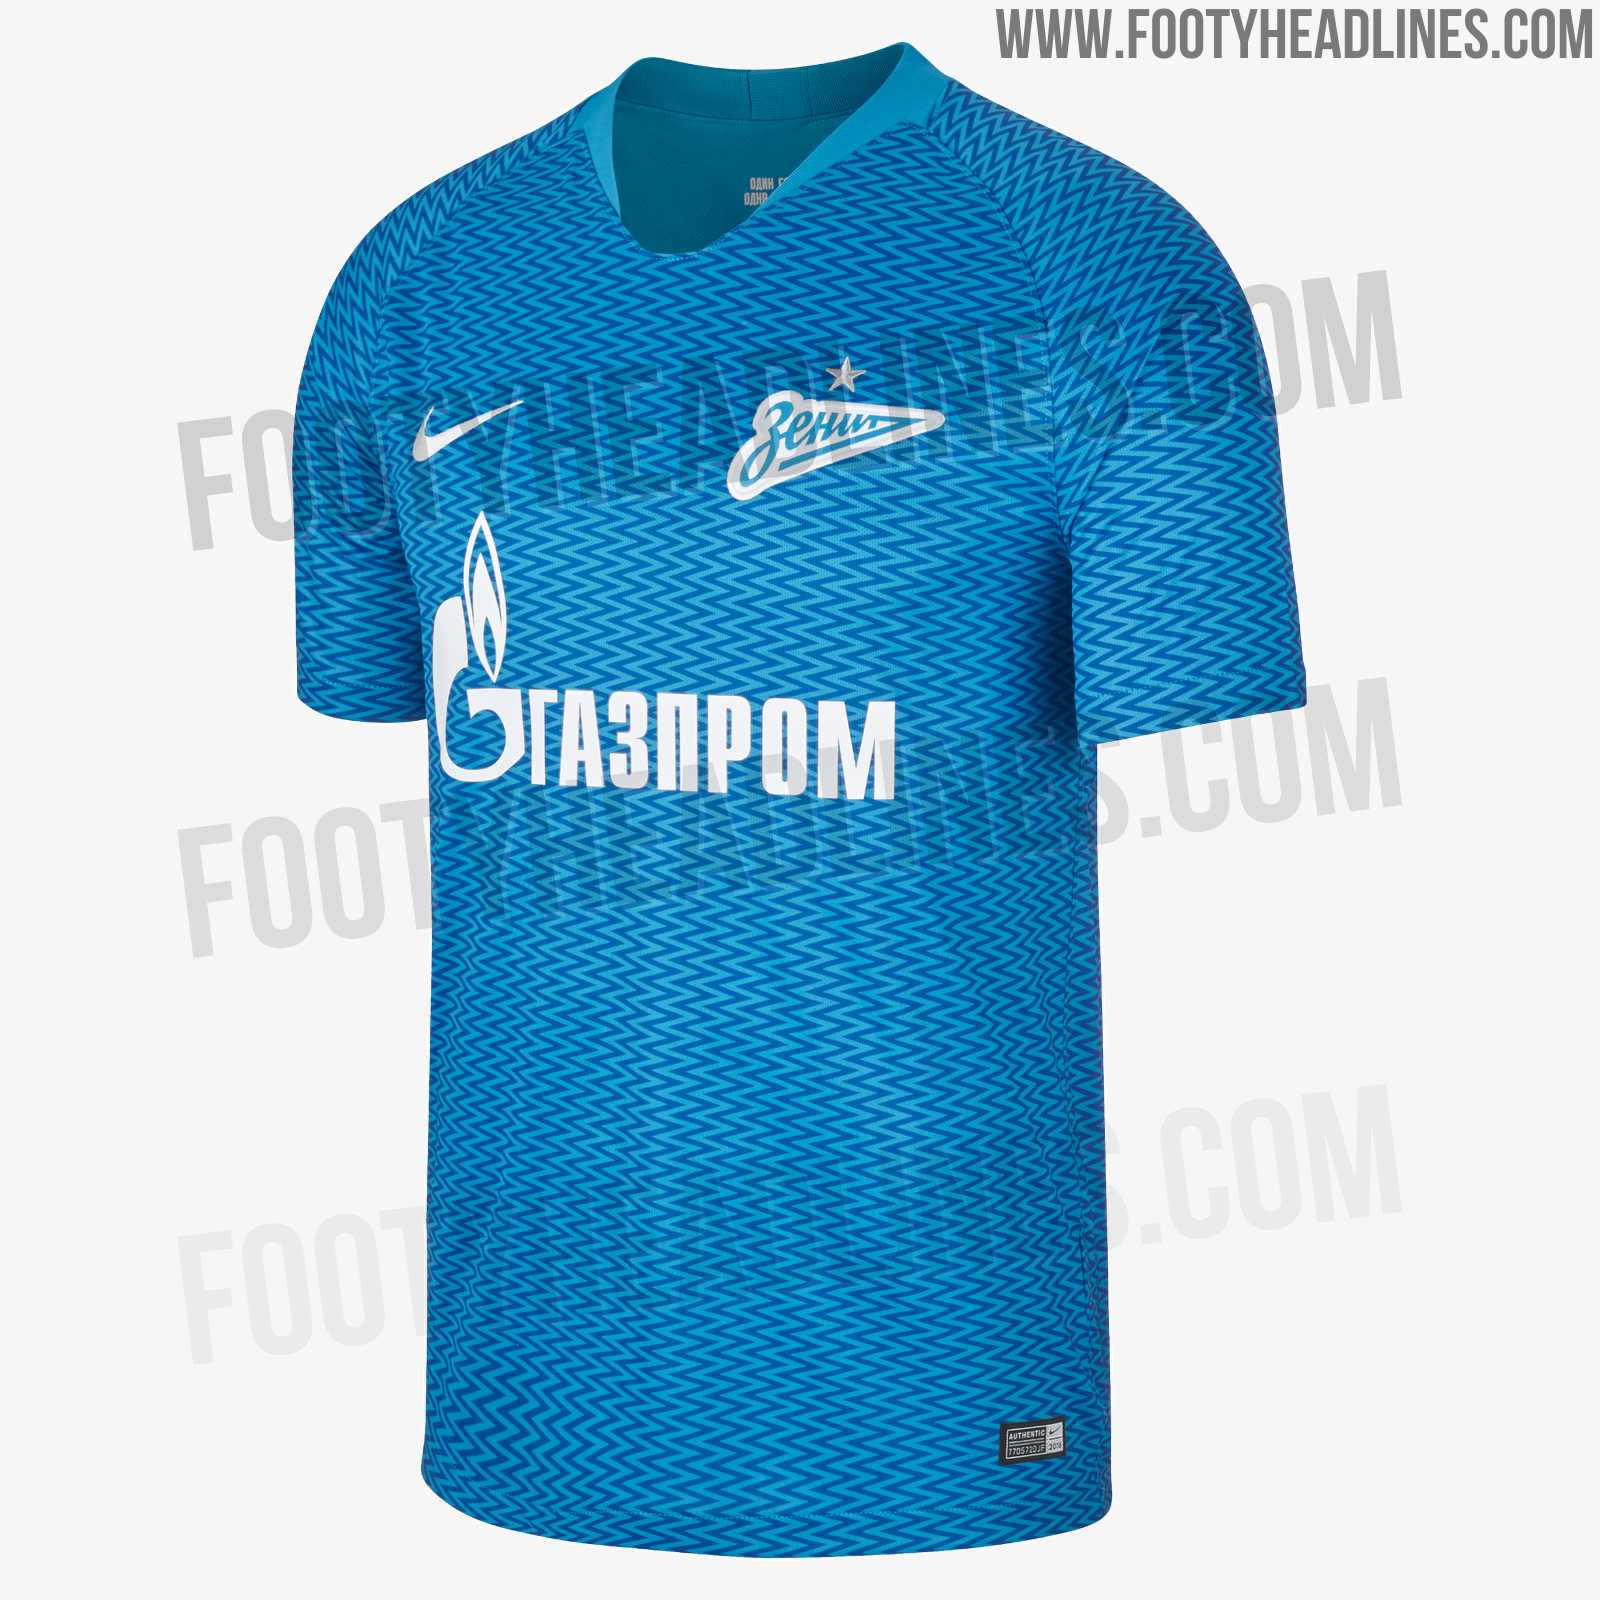 zenit-18-19-home-kit-2.jpg